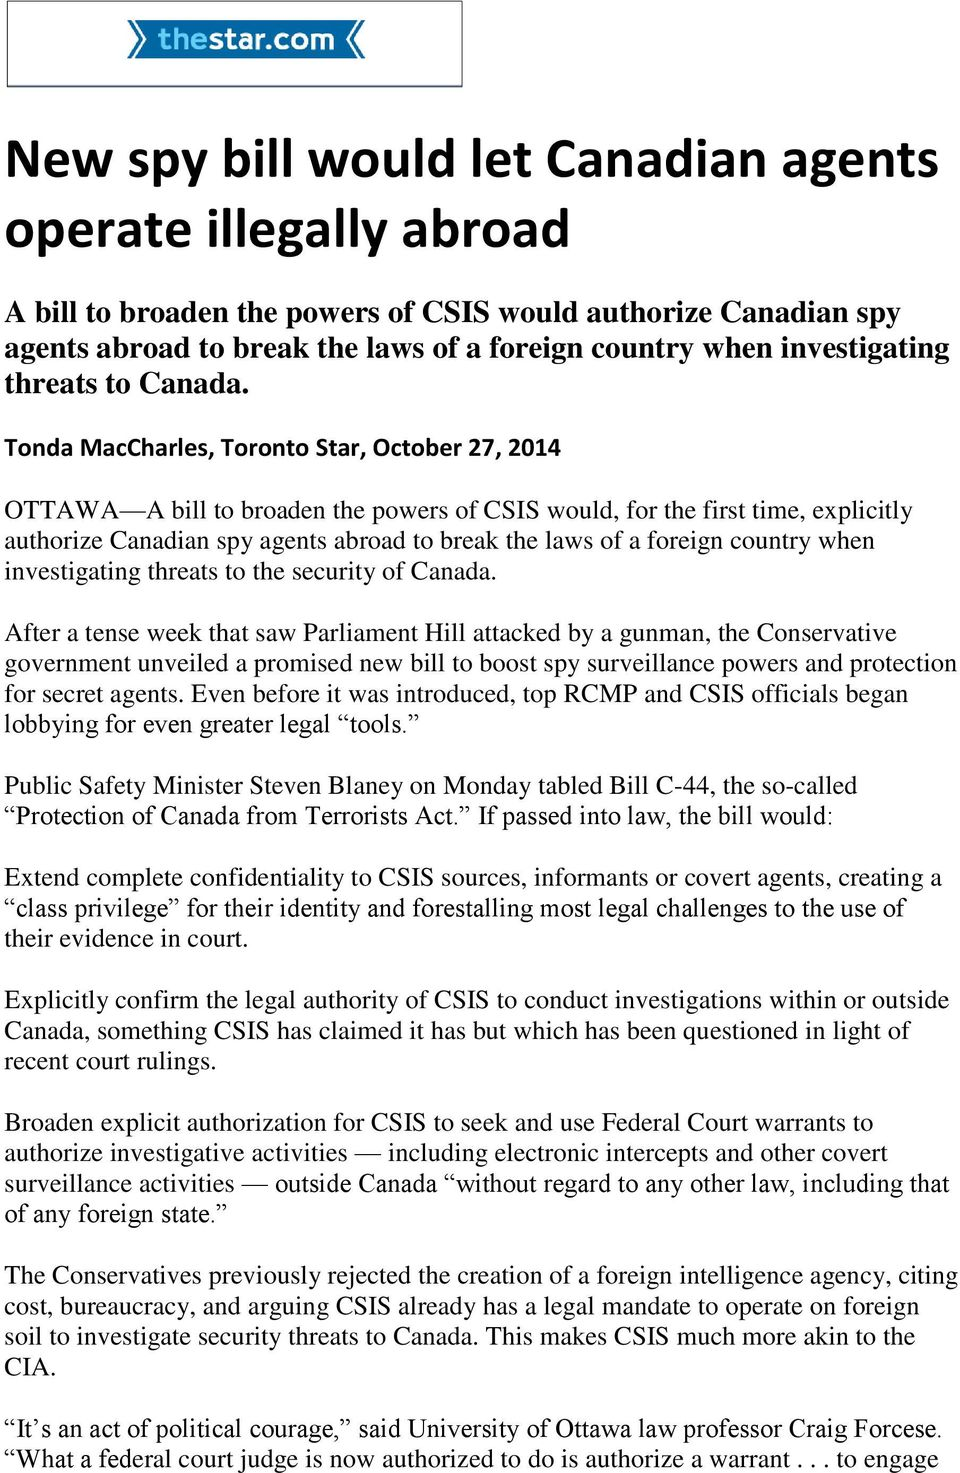 Tonda MacCharles, Toronto Star, October 27, 2014 OTTAWA A bill to broaden the powers of CSIS would, for the first time, explicitly authorize Canadian spy agents abroad to break the laws of a foreign